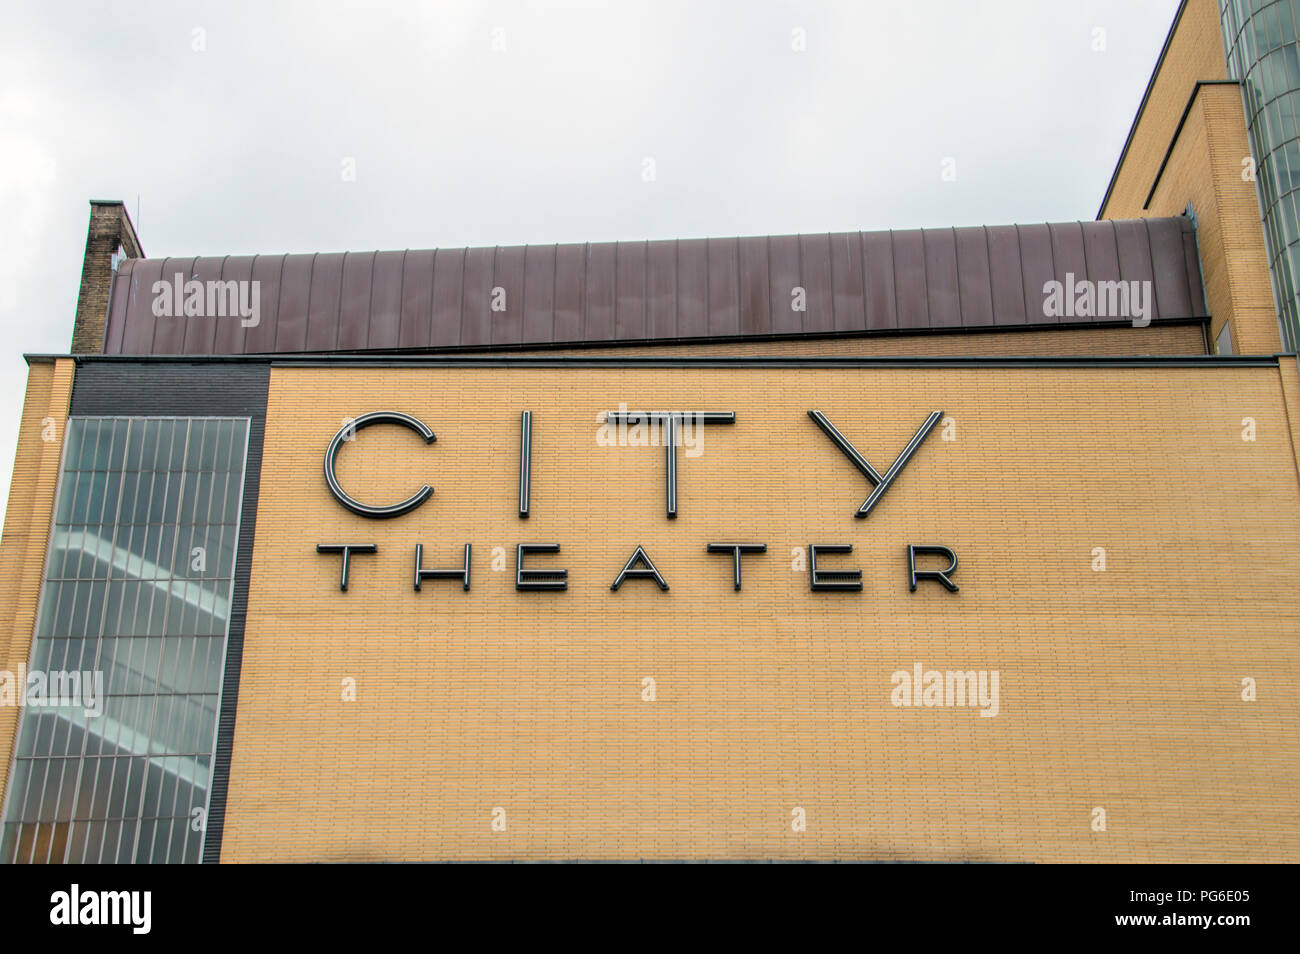 Pathe City Theater At Amsterdam The Netherlands 2018 - Stock Image